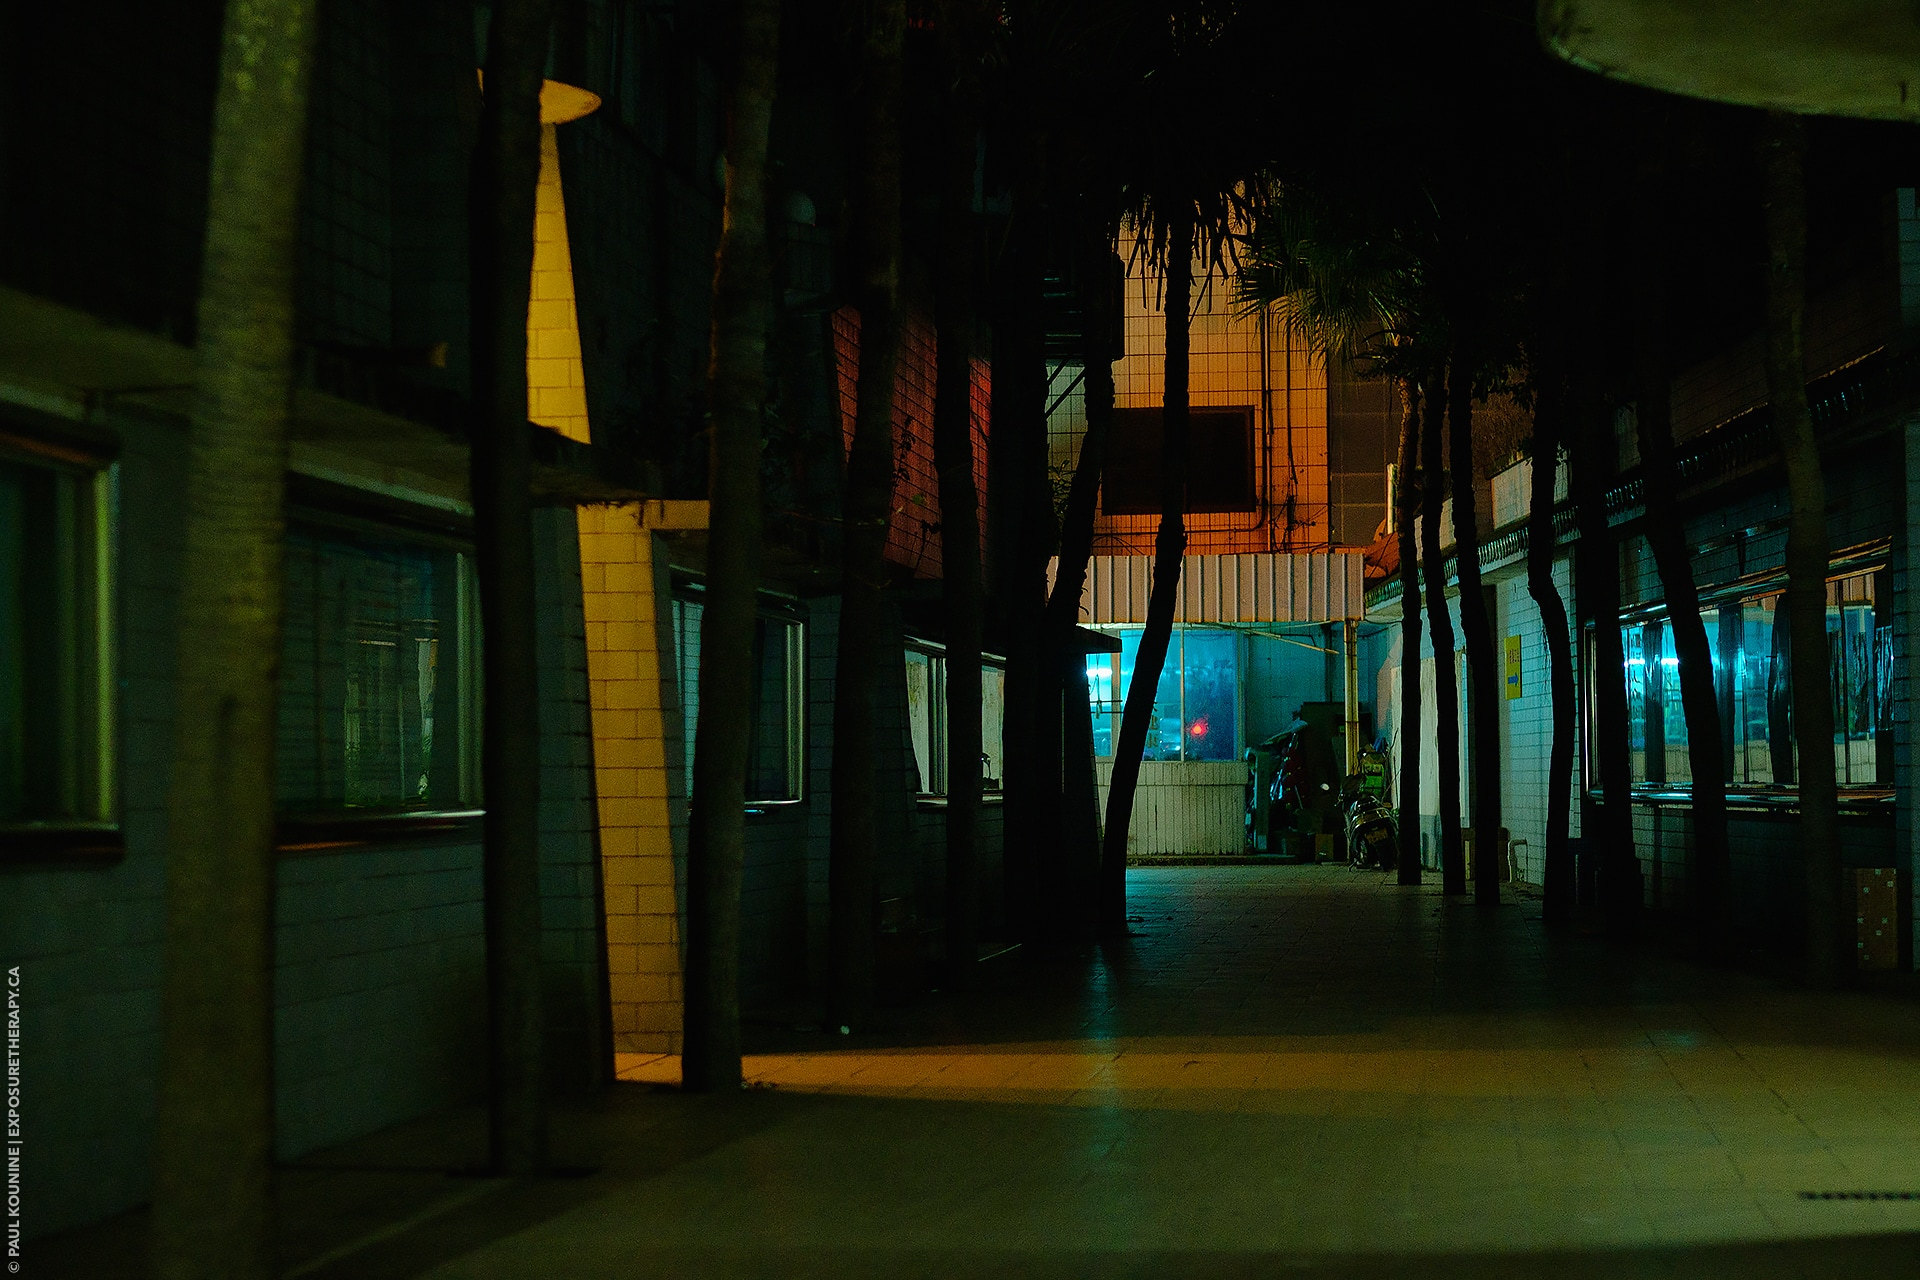 Colourful Xiaolanzhen alley lights at night